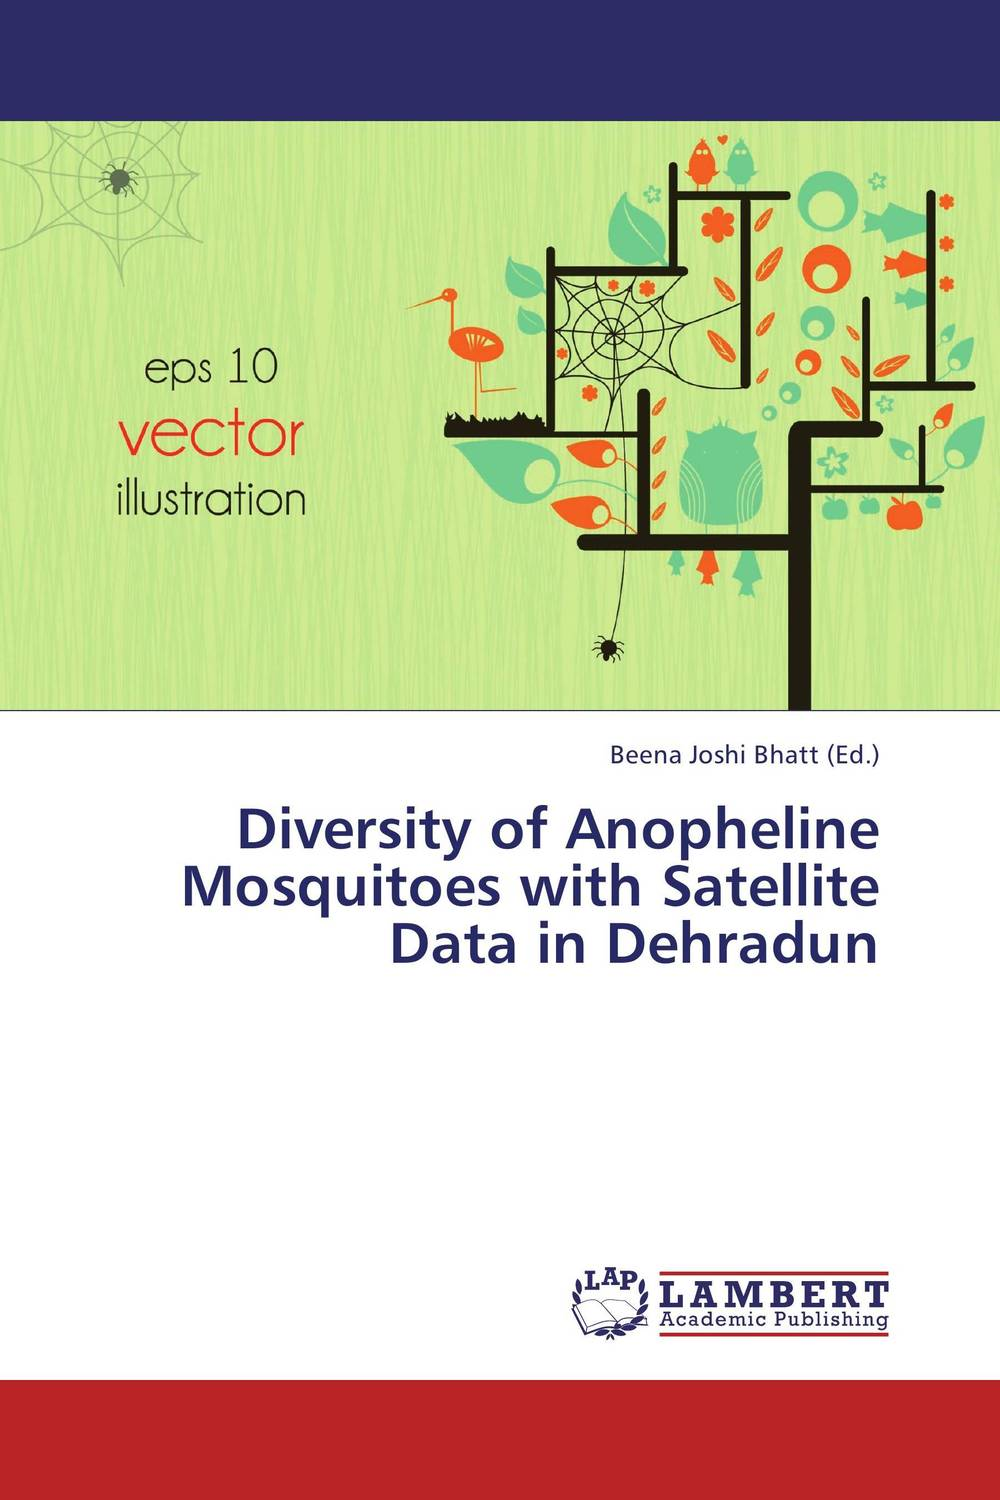 Diversity of Anopheline Mosquitoes with Satellite Data in Dehradun